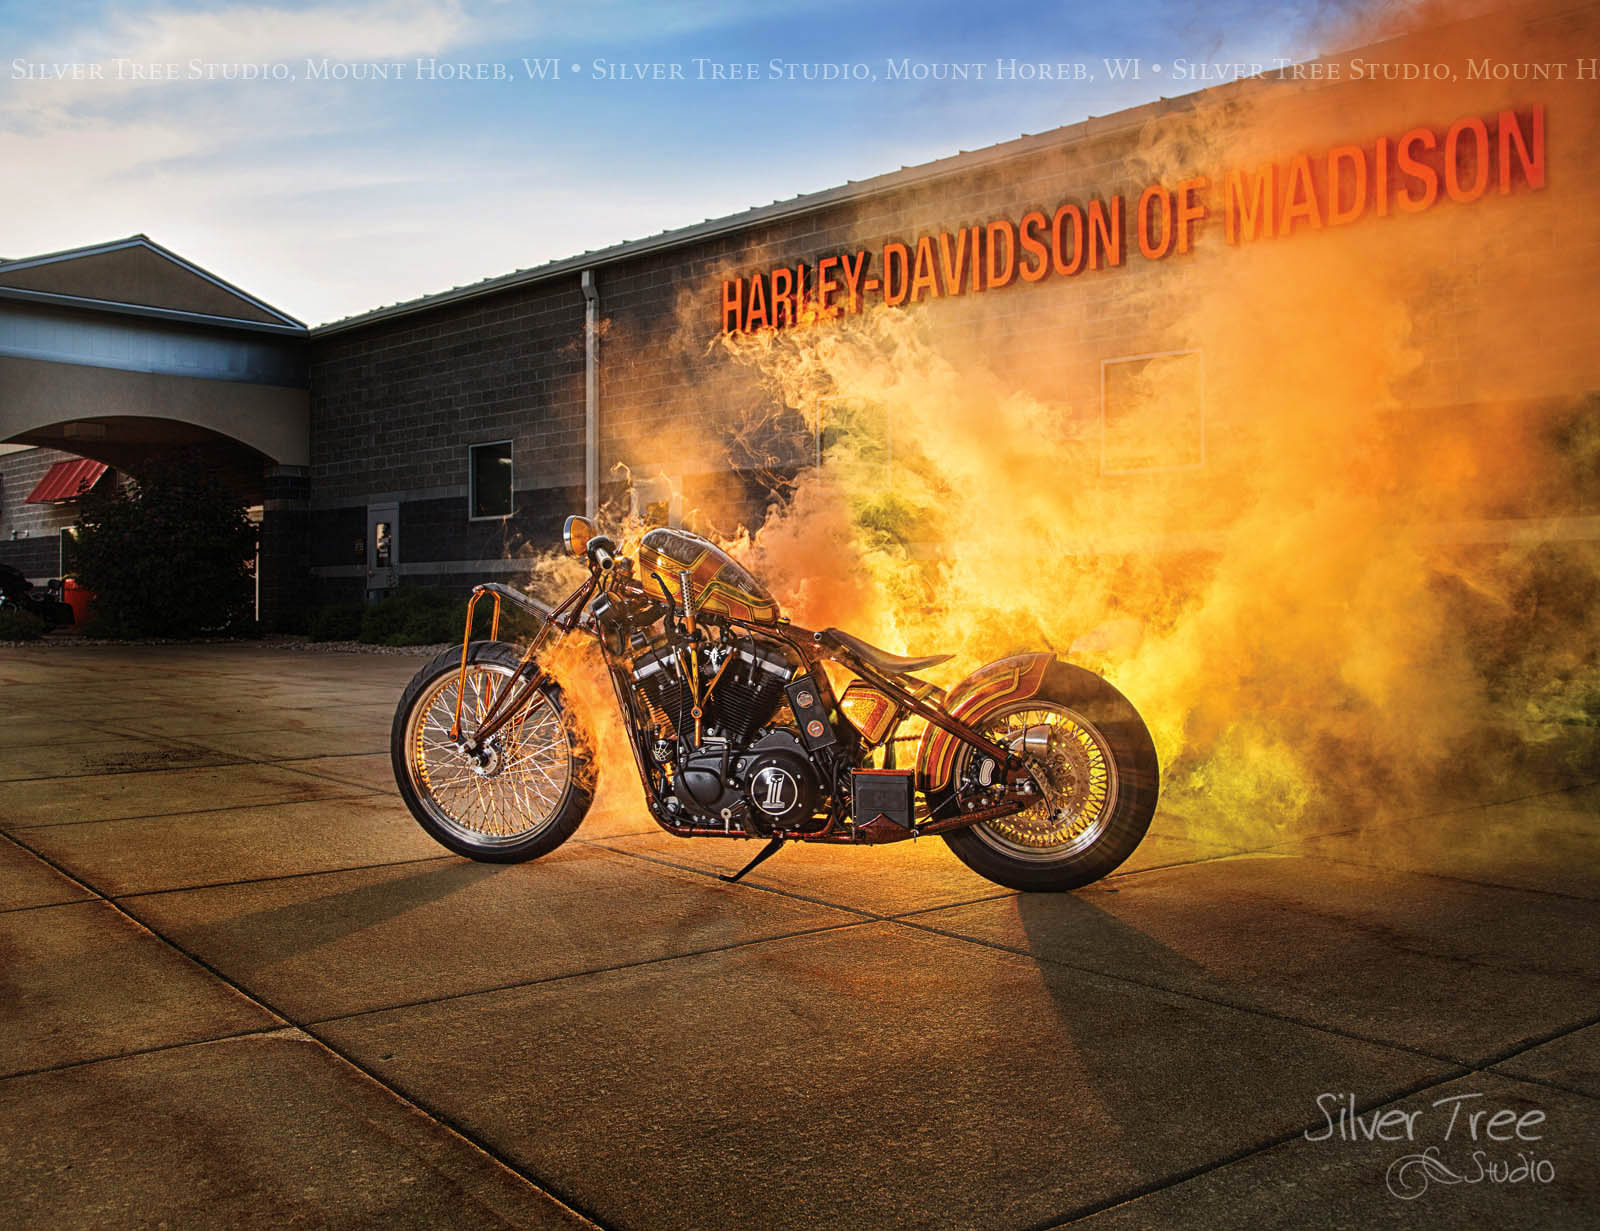 Commissioned by Harley Davidson of Madison